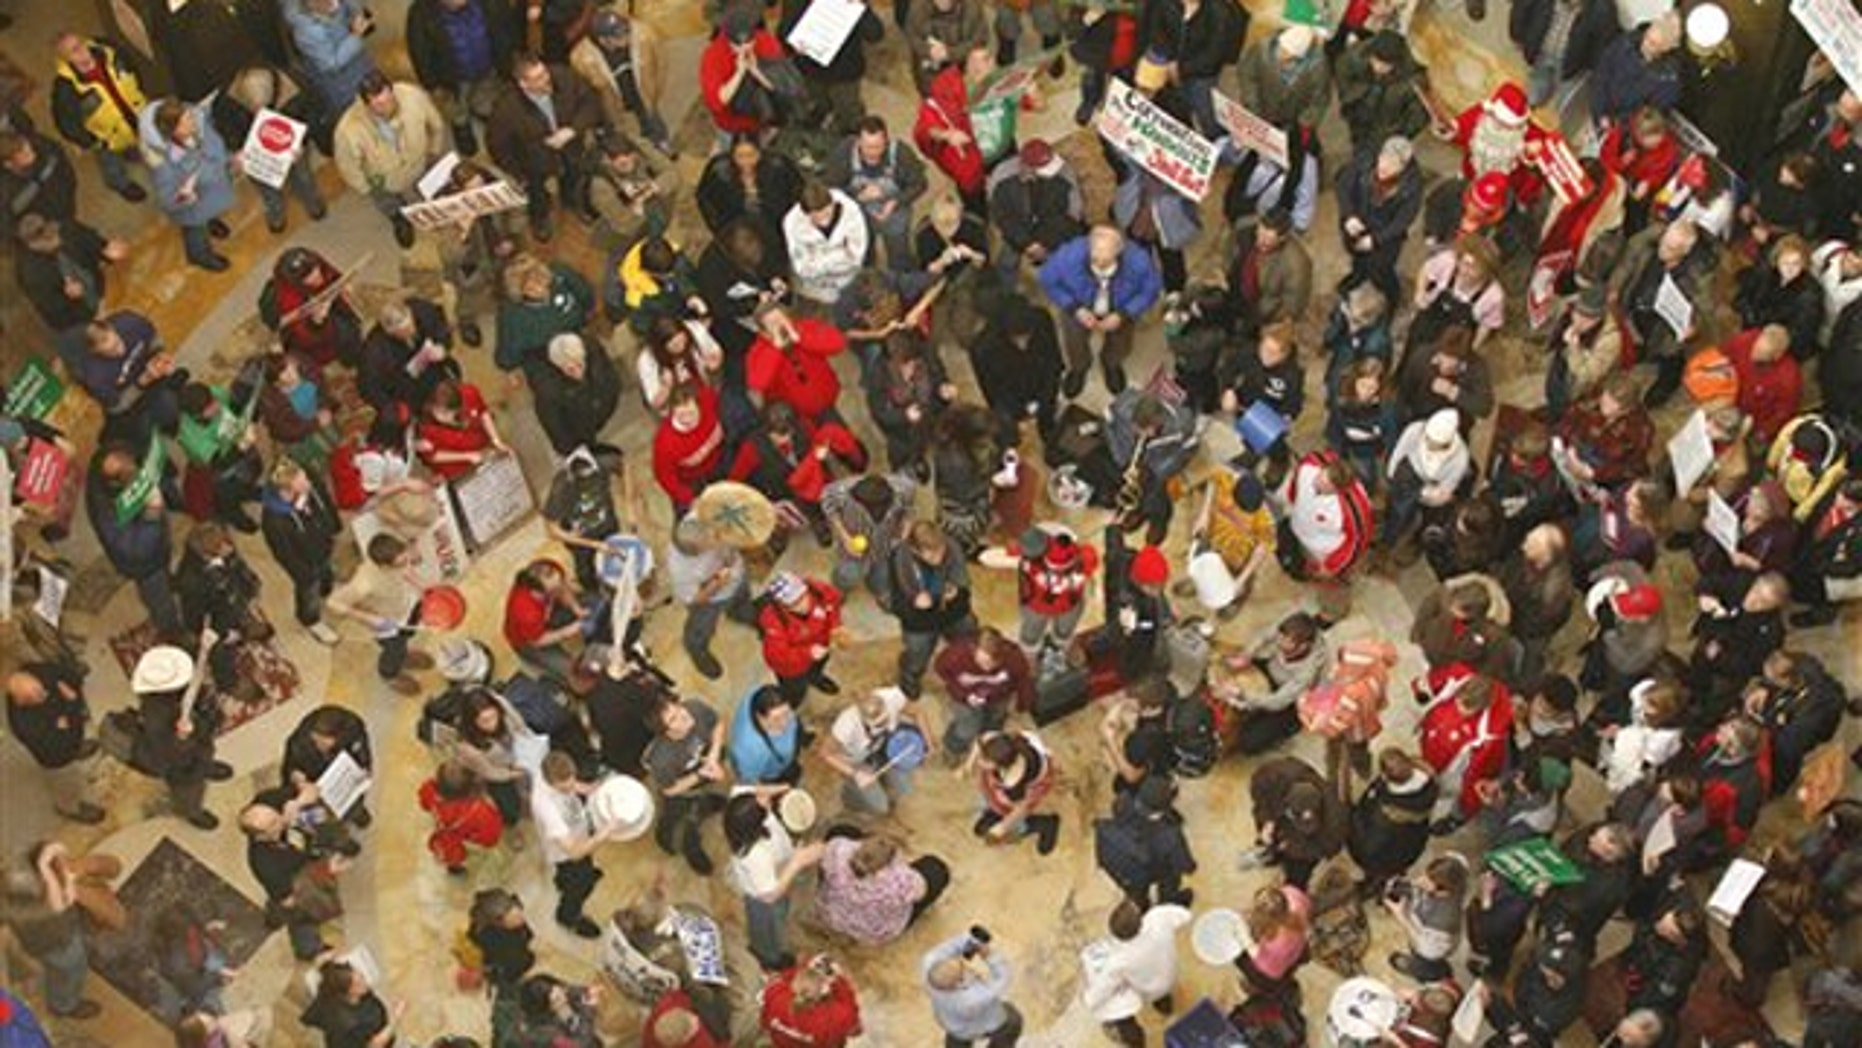 Protesters bang drums and chant inside the state Capitol Feb. 22 in Madison, Wis.